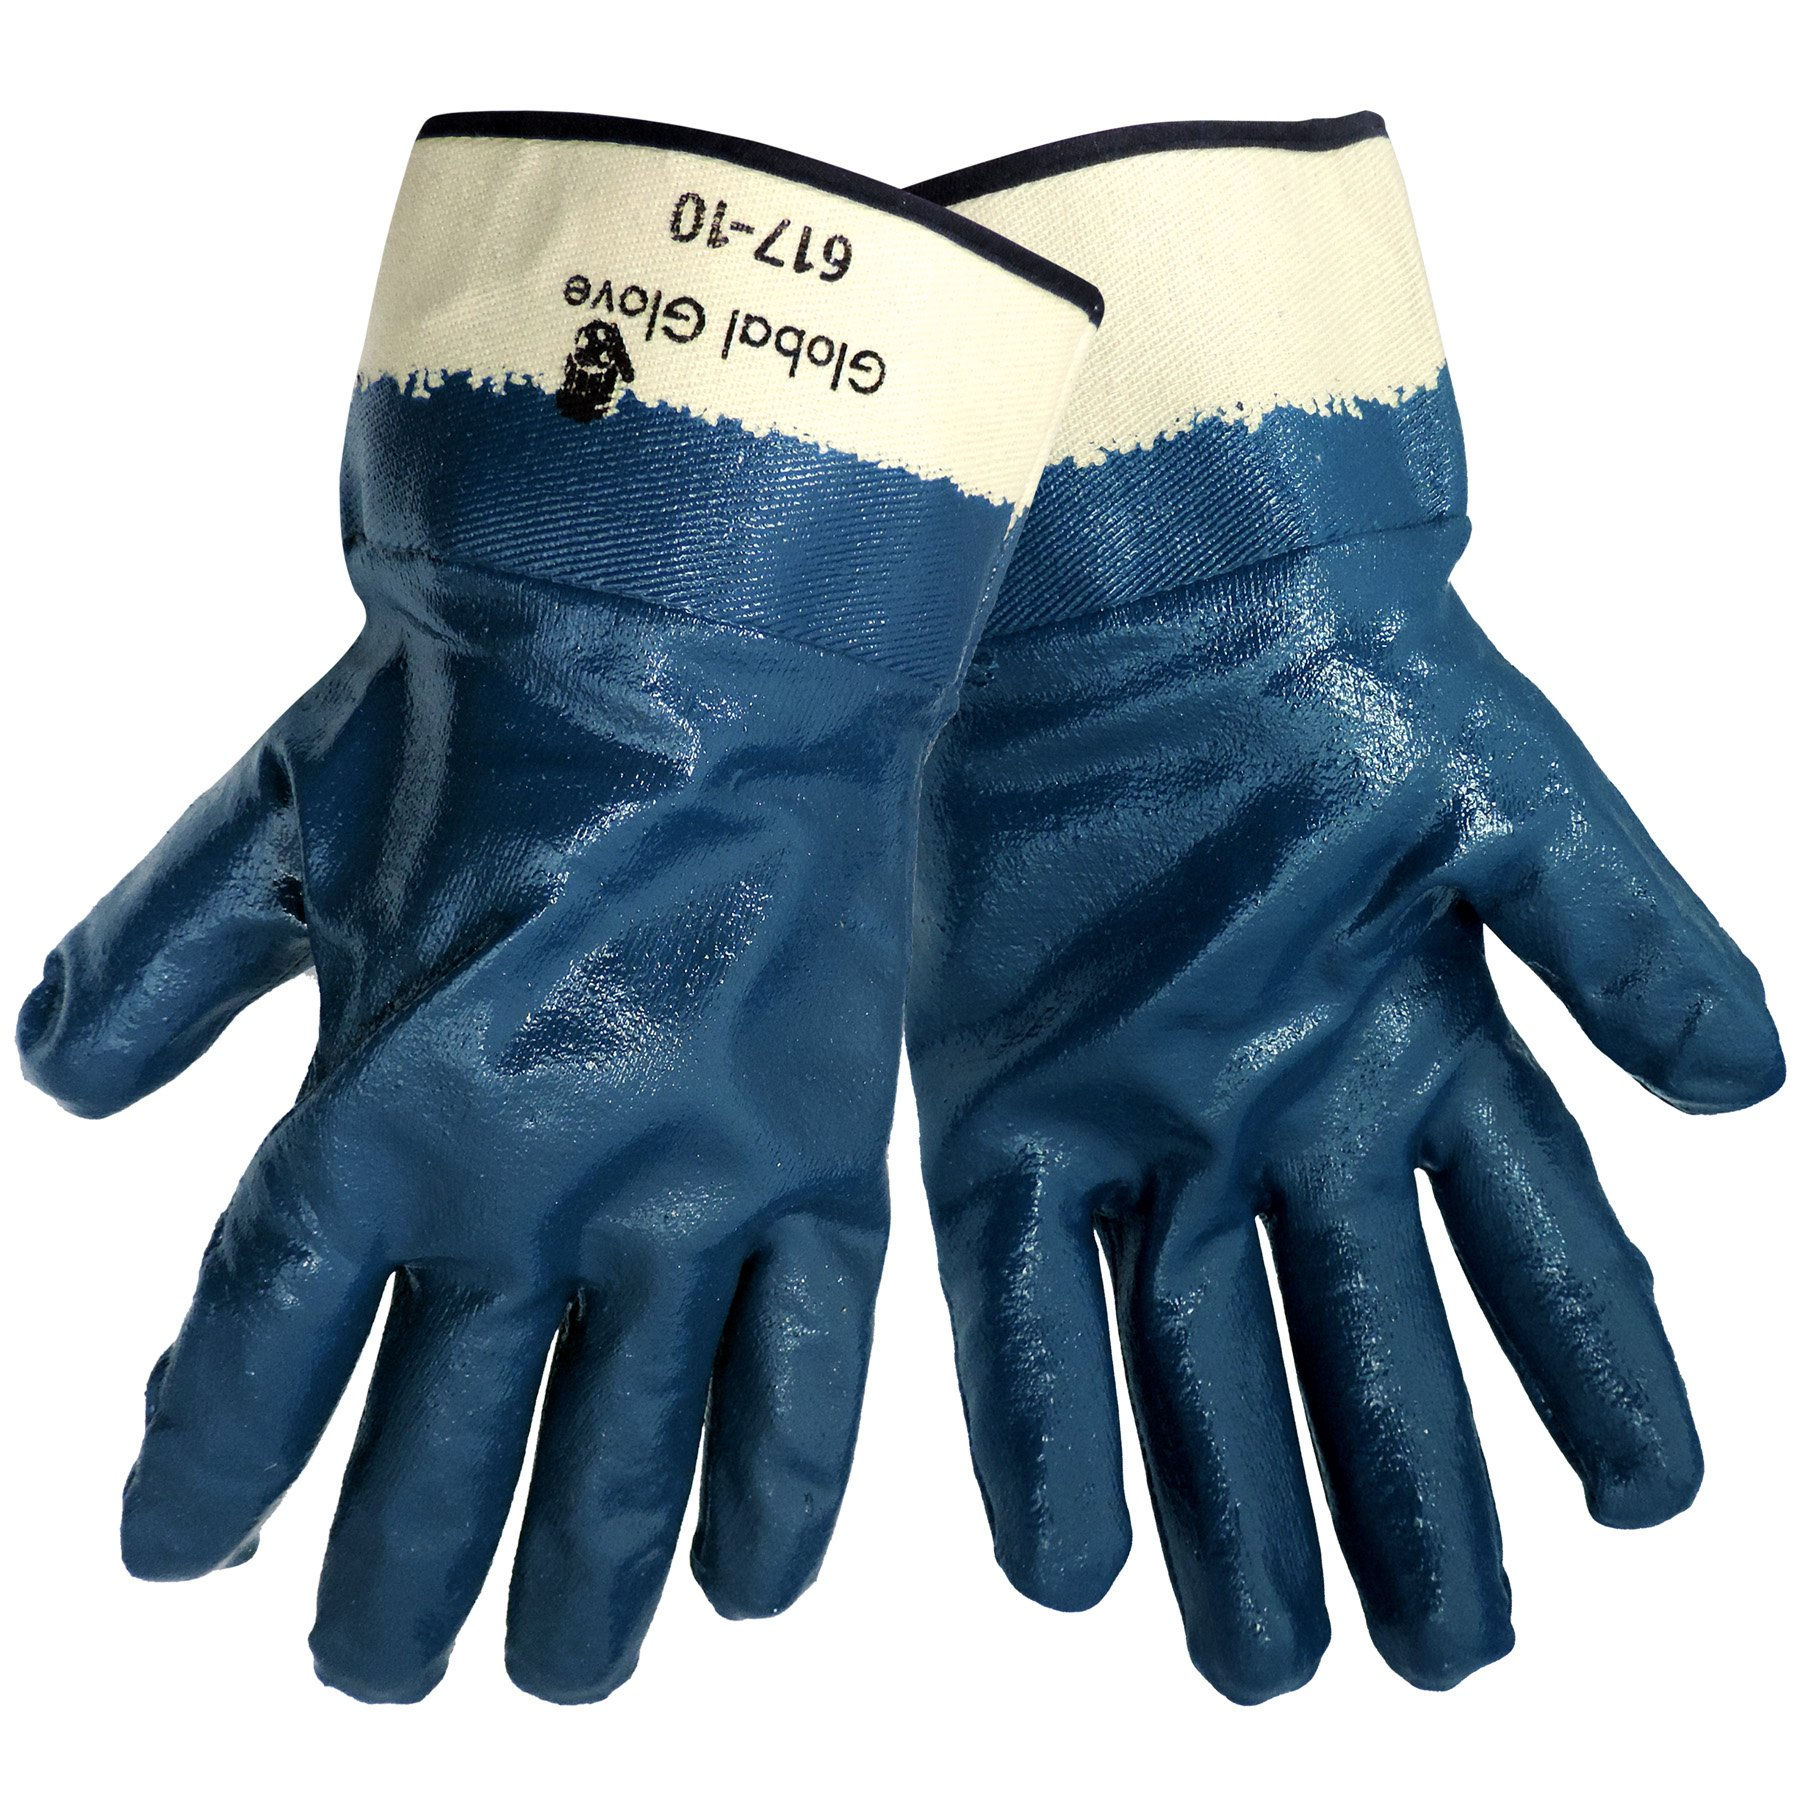 Global Glove 617 Fully Nitrile Dipped on 2 Piece Jersey Liner Glove with Safety Cuff, Chemical Resistent, Extra Large, Light Blue (Case of 72)